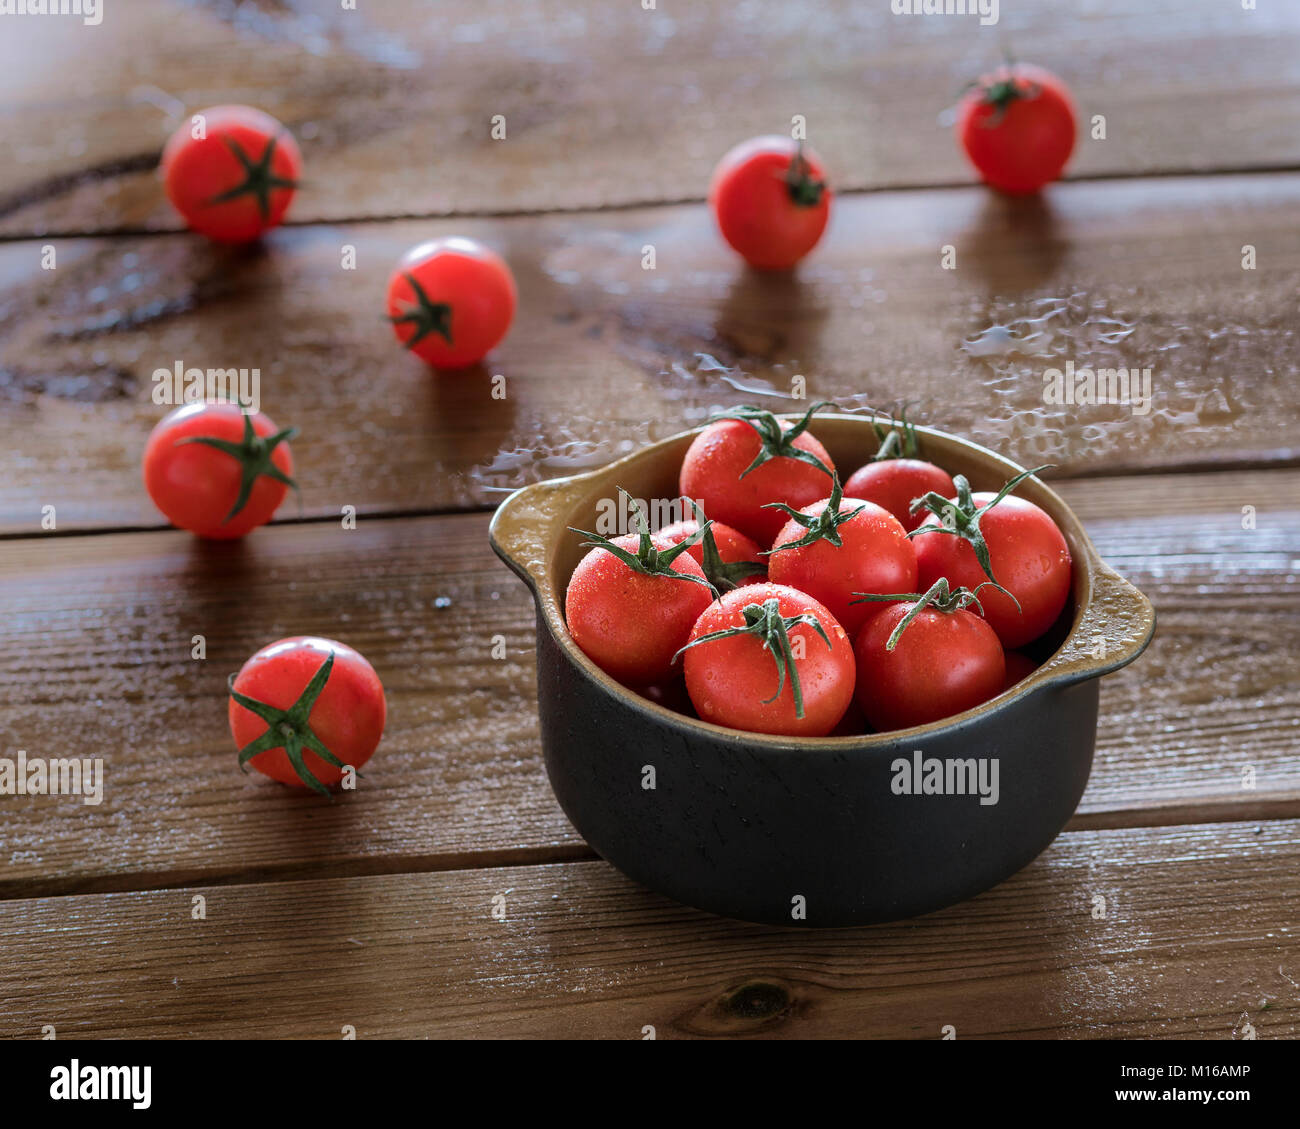 Cocktail tomatoes sprayed with water in brown bowl on wooden table - Stock Image